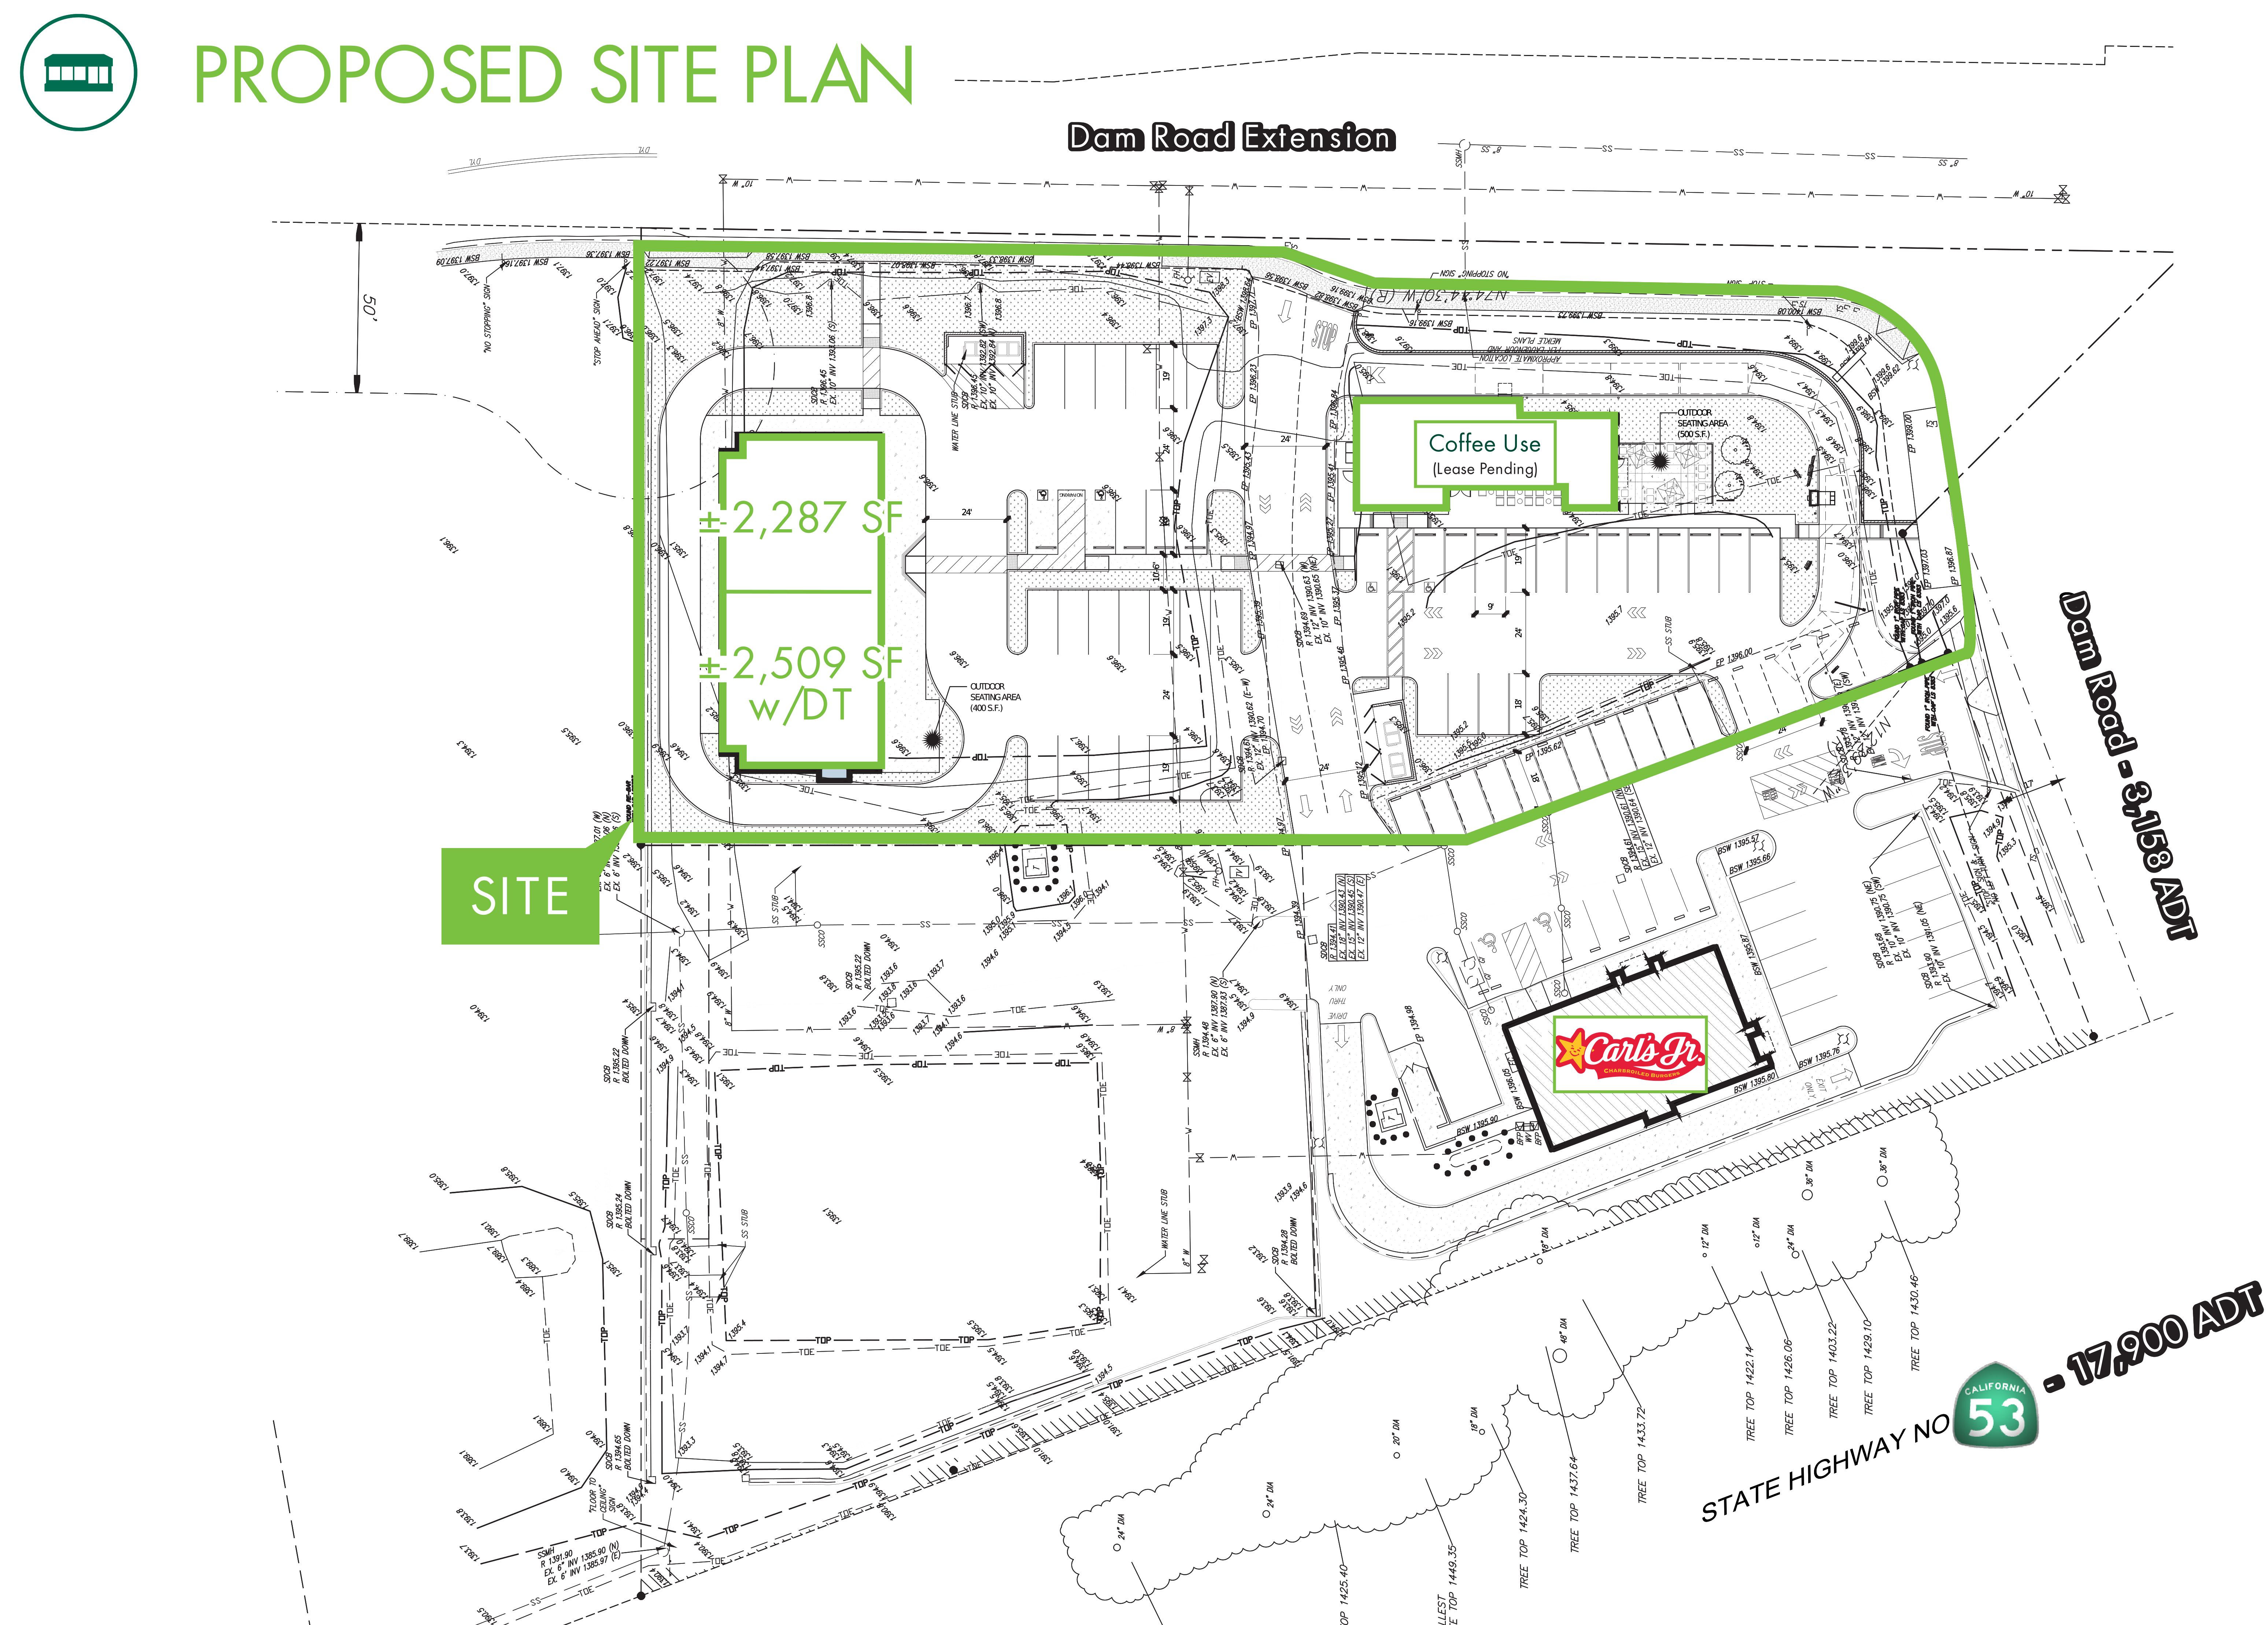 Retail / Highway Commercial Land - Clearlake: site plan